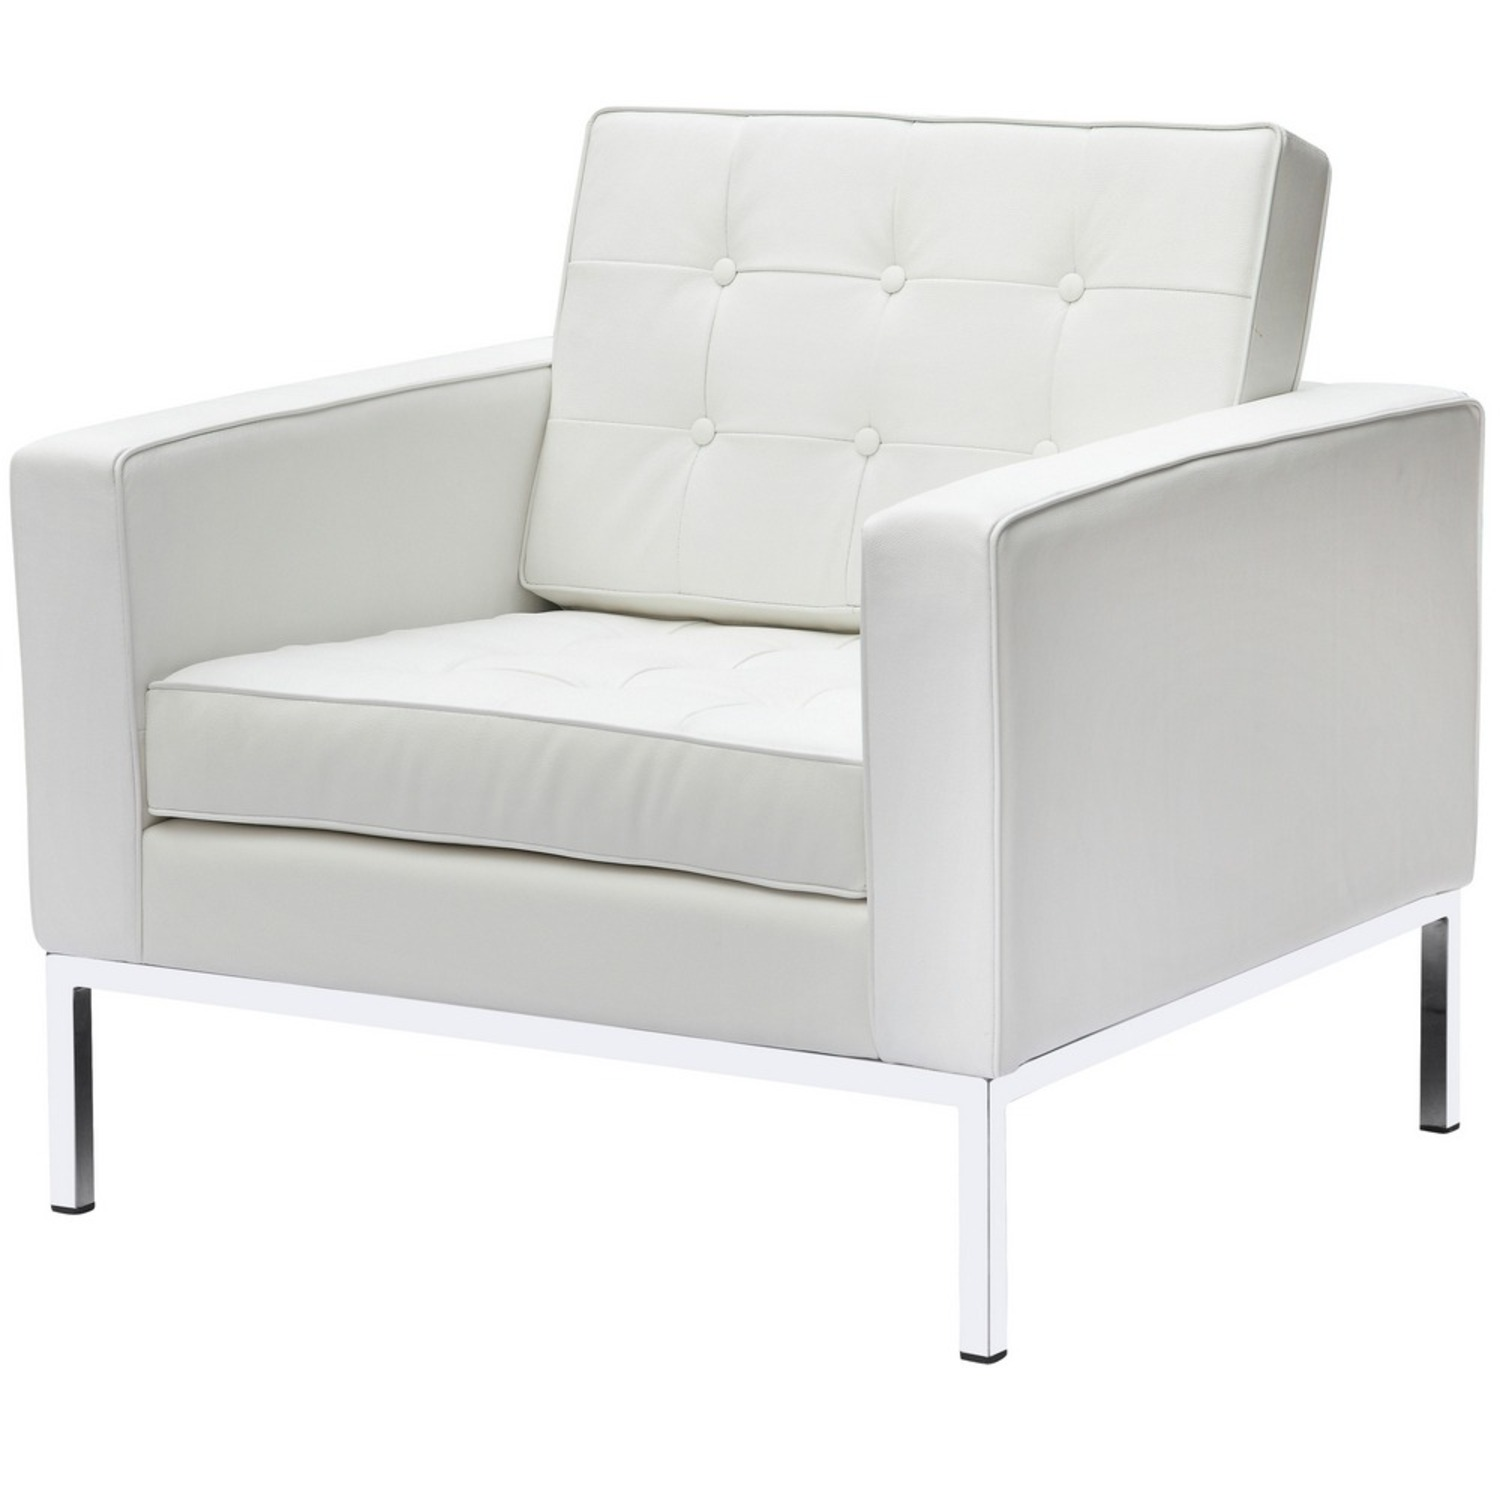 Modern Arm Chair In White Italian Leather - image-4